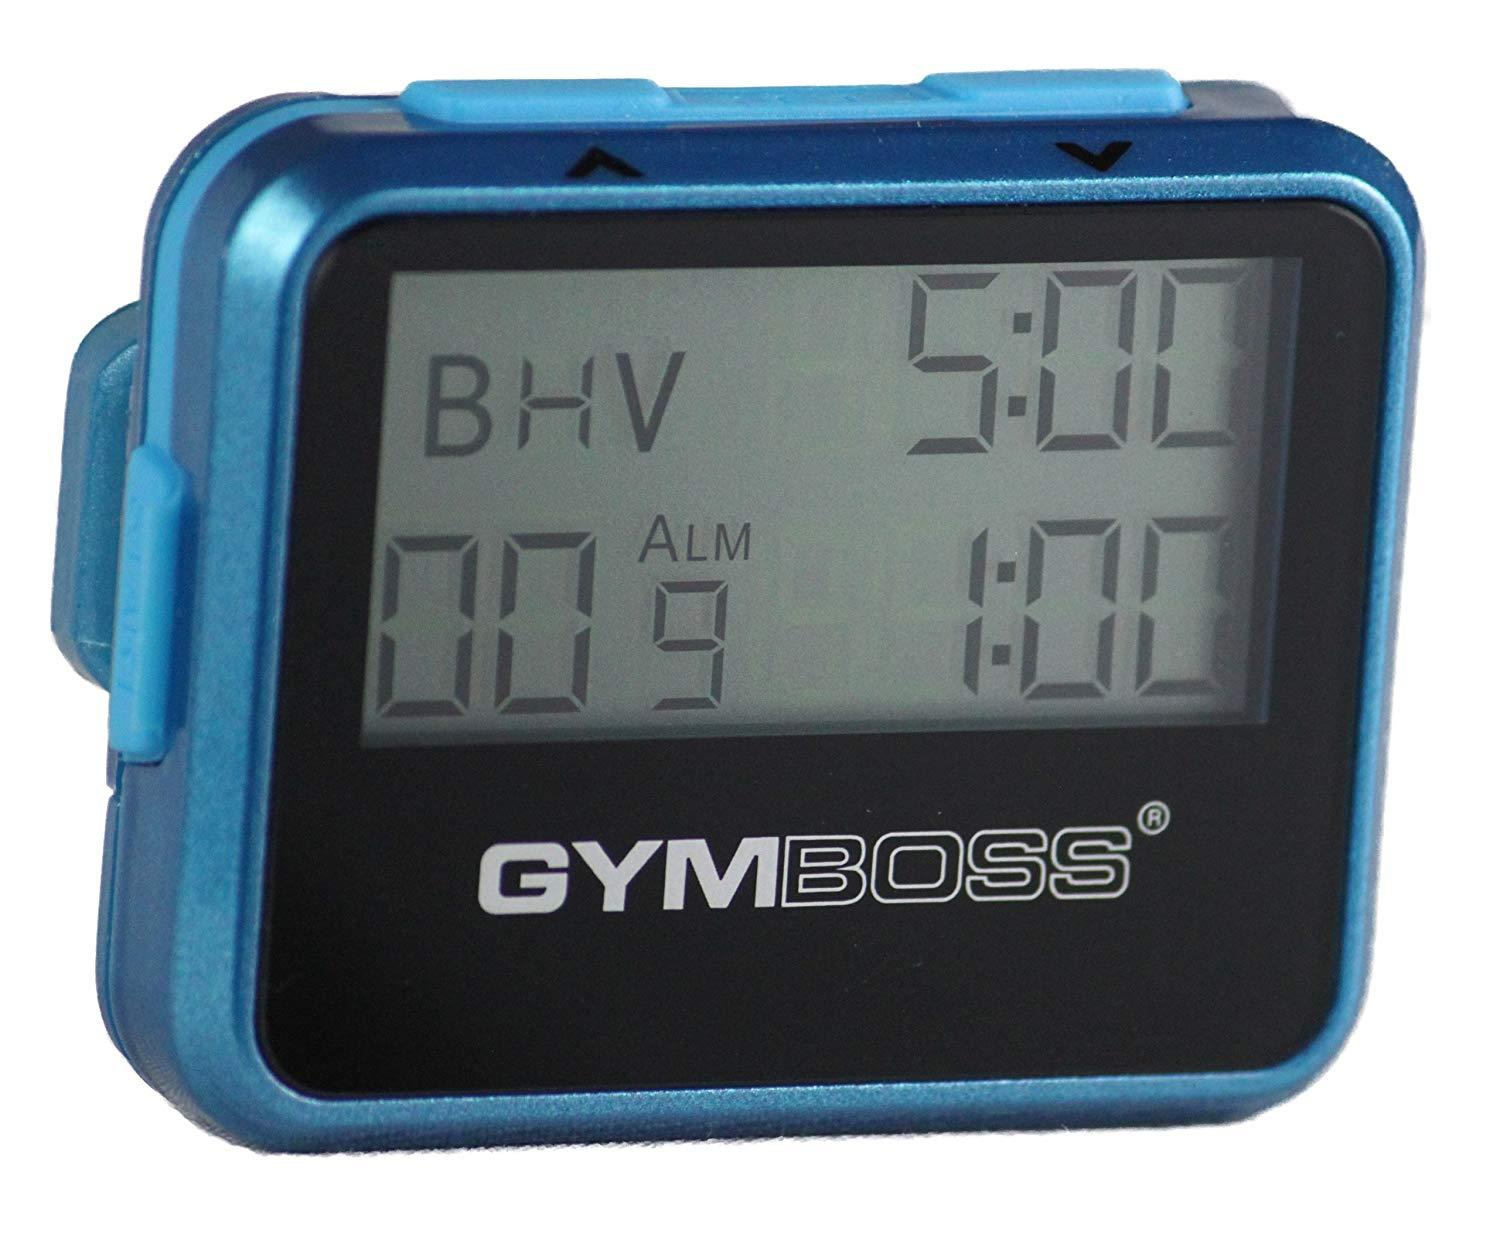 Gymboss Interval Timer And Stopwatch - Teal / Blue Metallic Gloss By Galleon.ph.